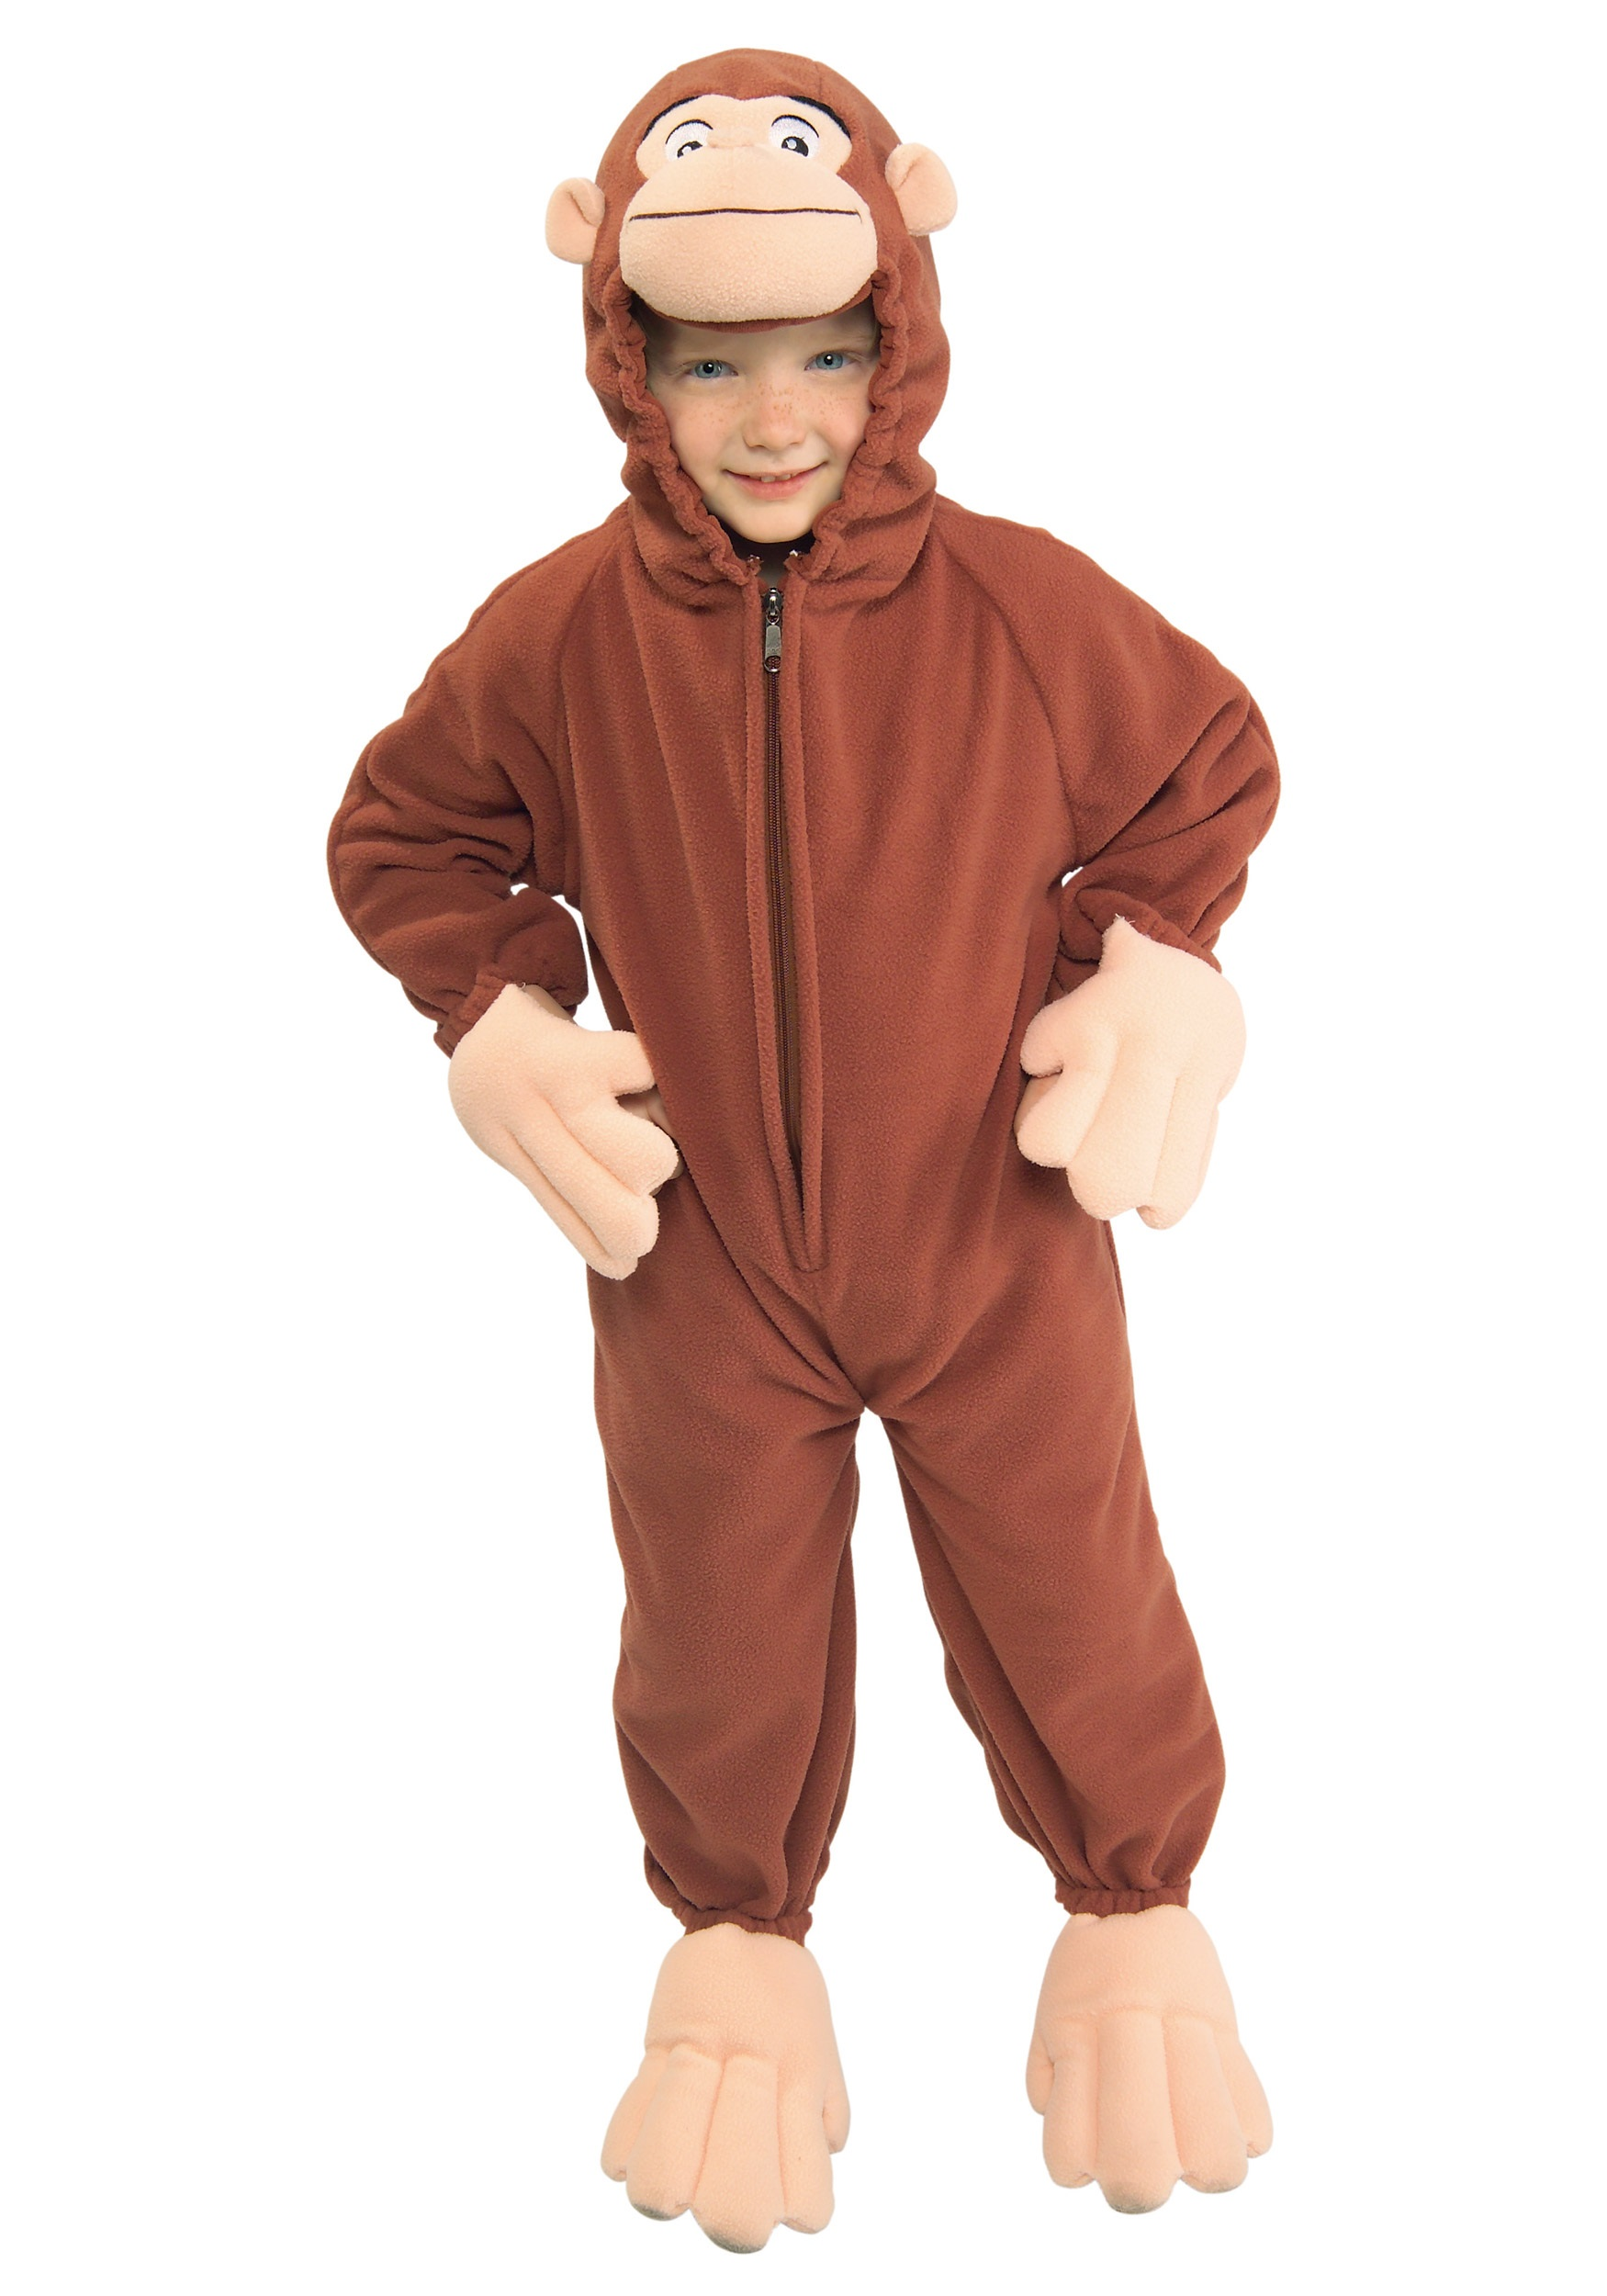 Toddler Curious George Costume RU885500